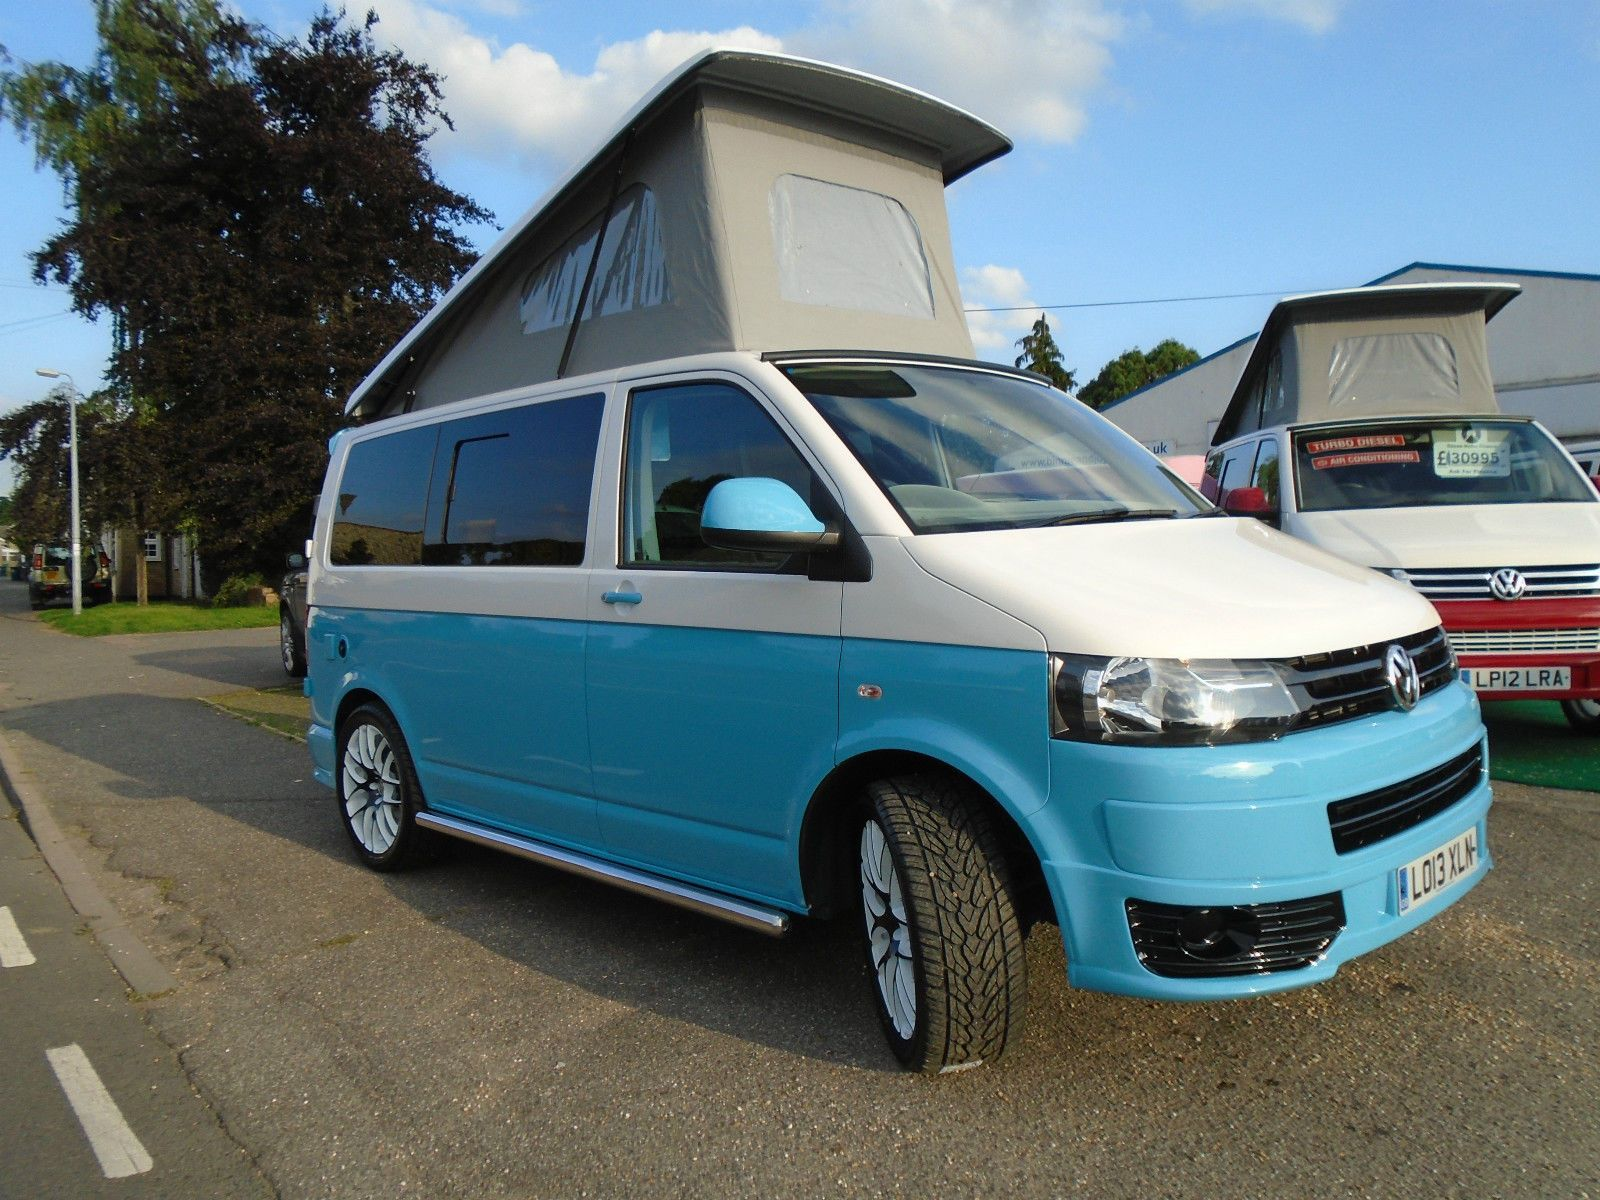 2013 volkswagen transporter t5 a c 102ps brand new retro camper van conversion t5 camper van. Black Bedroom Furniture Sets. Home Design Ideas